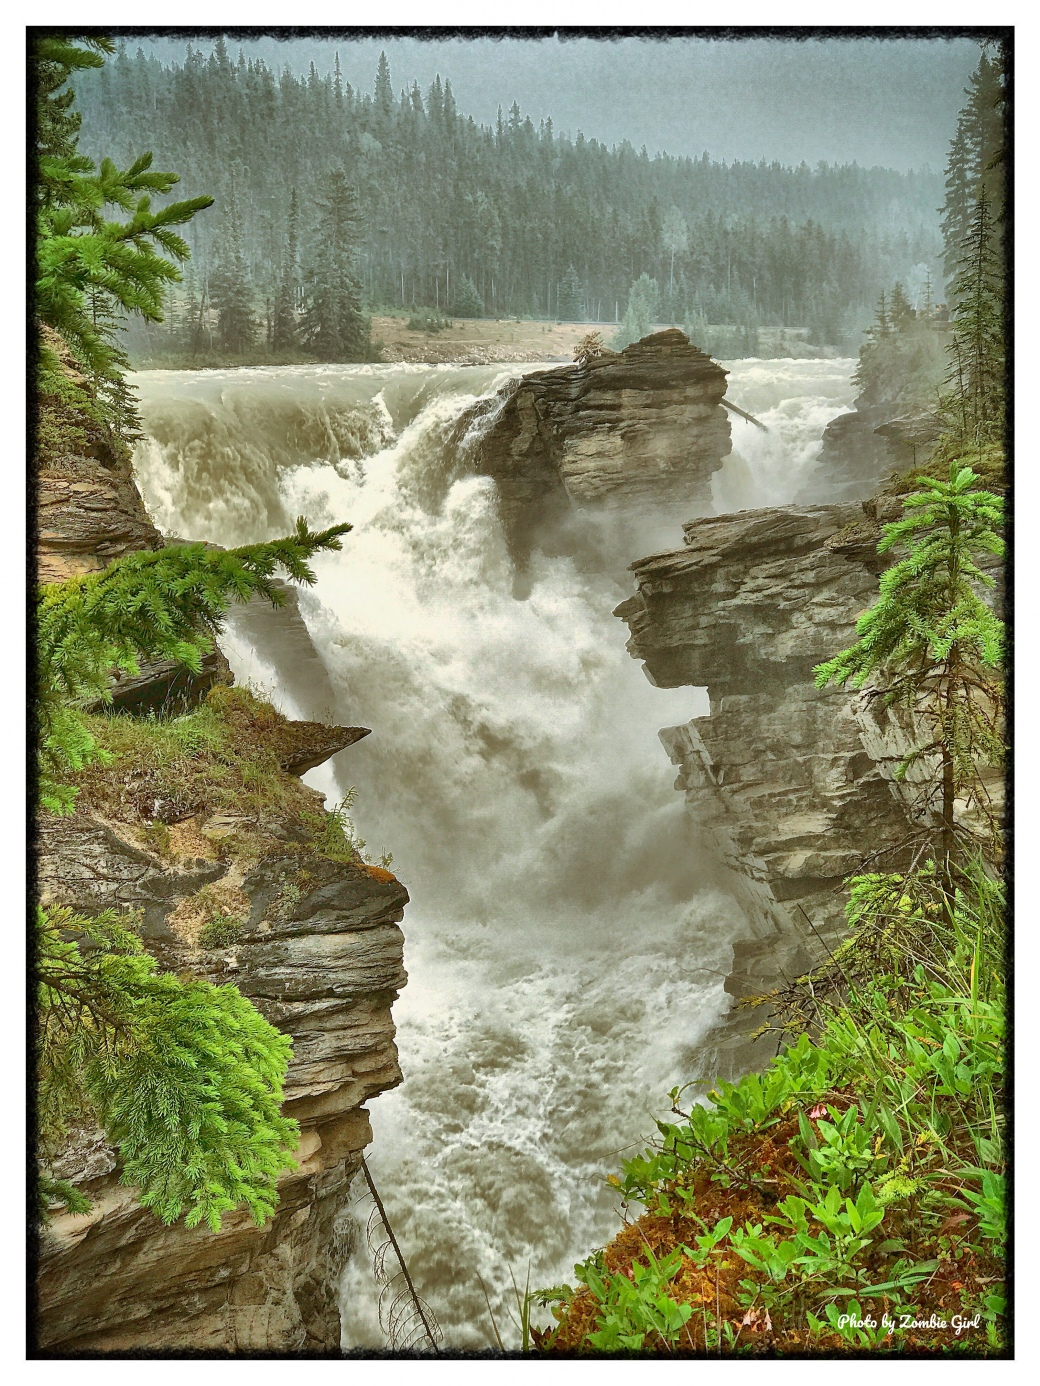 The water thunders down into the chasm at Athabasca Falls